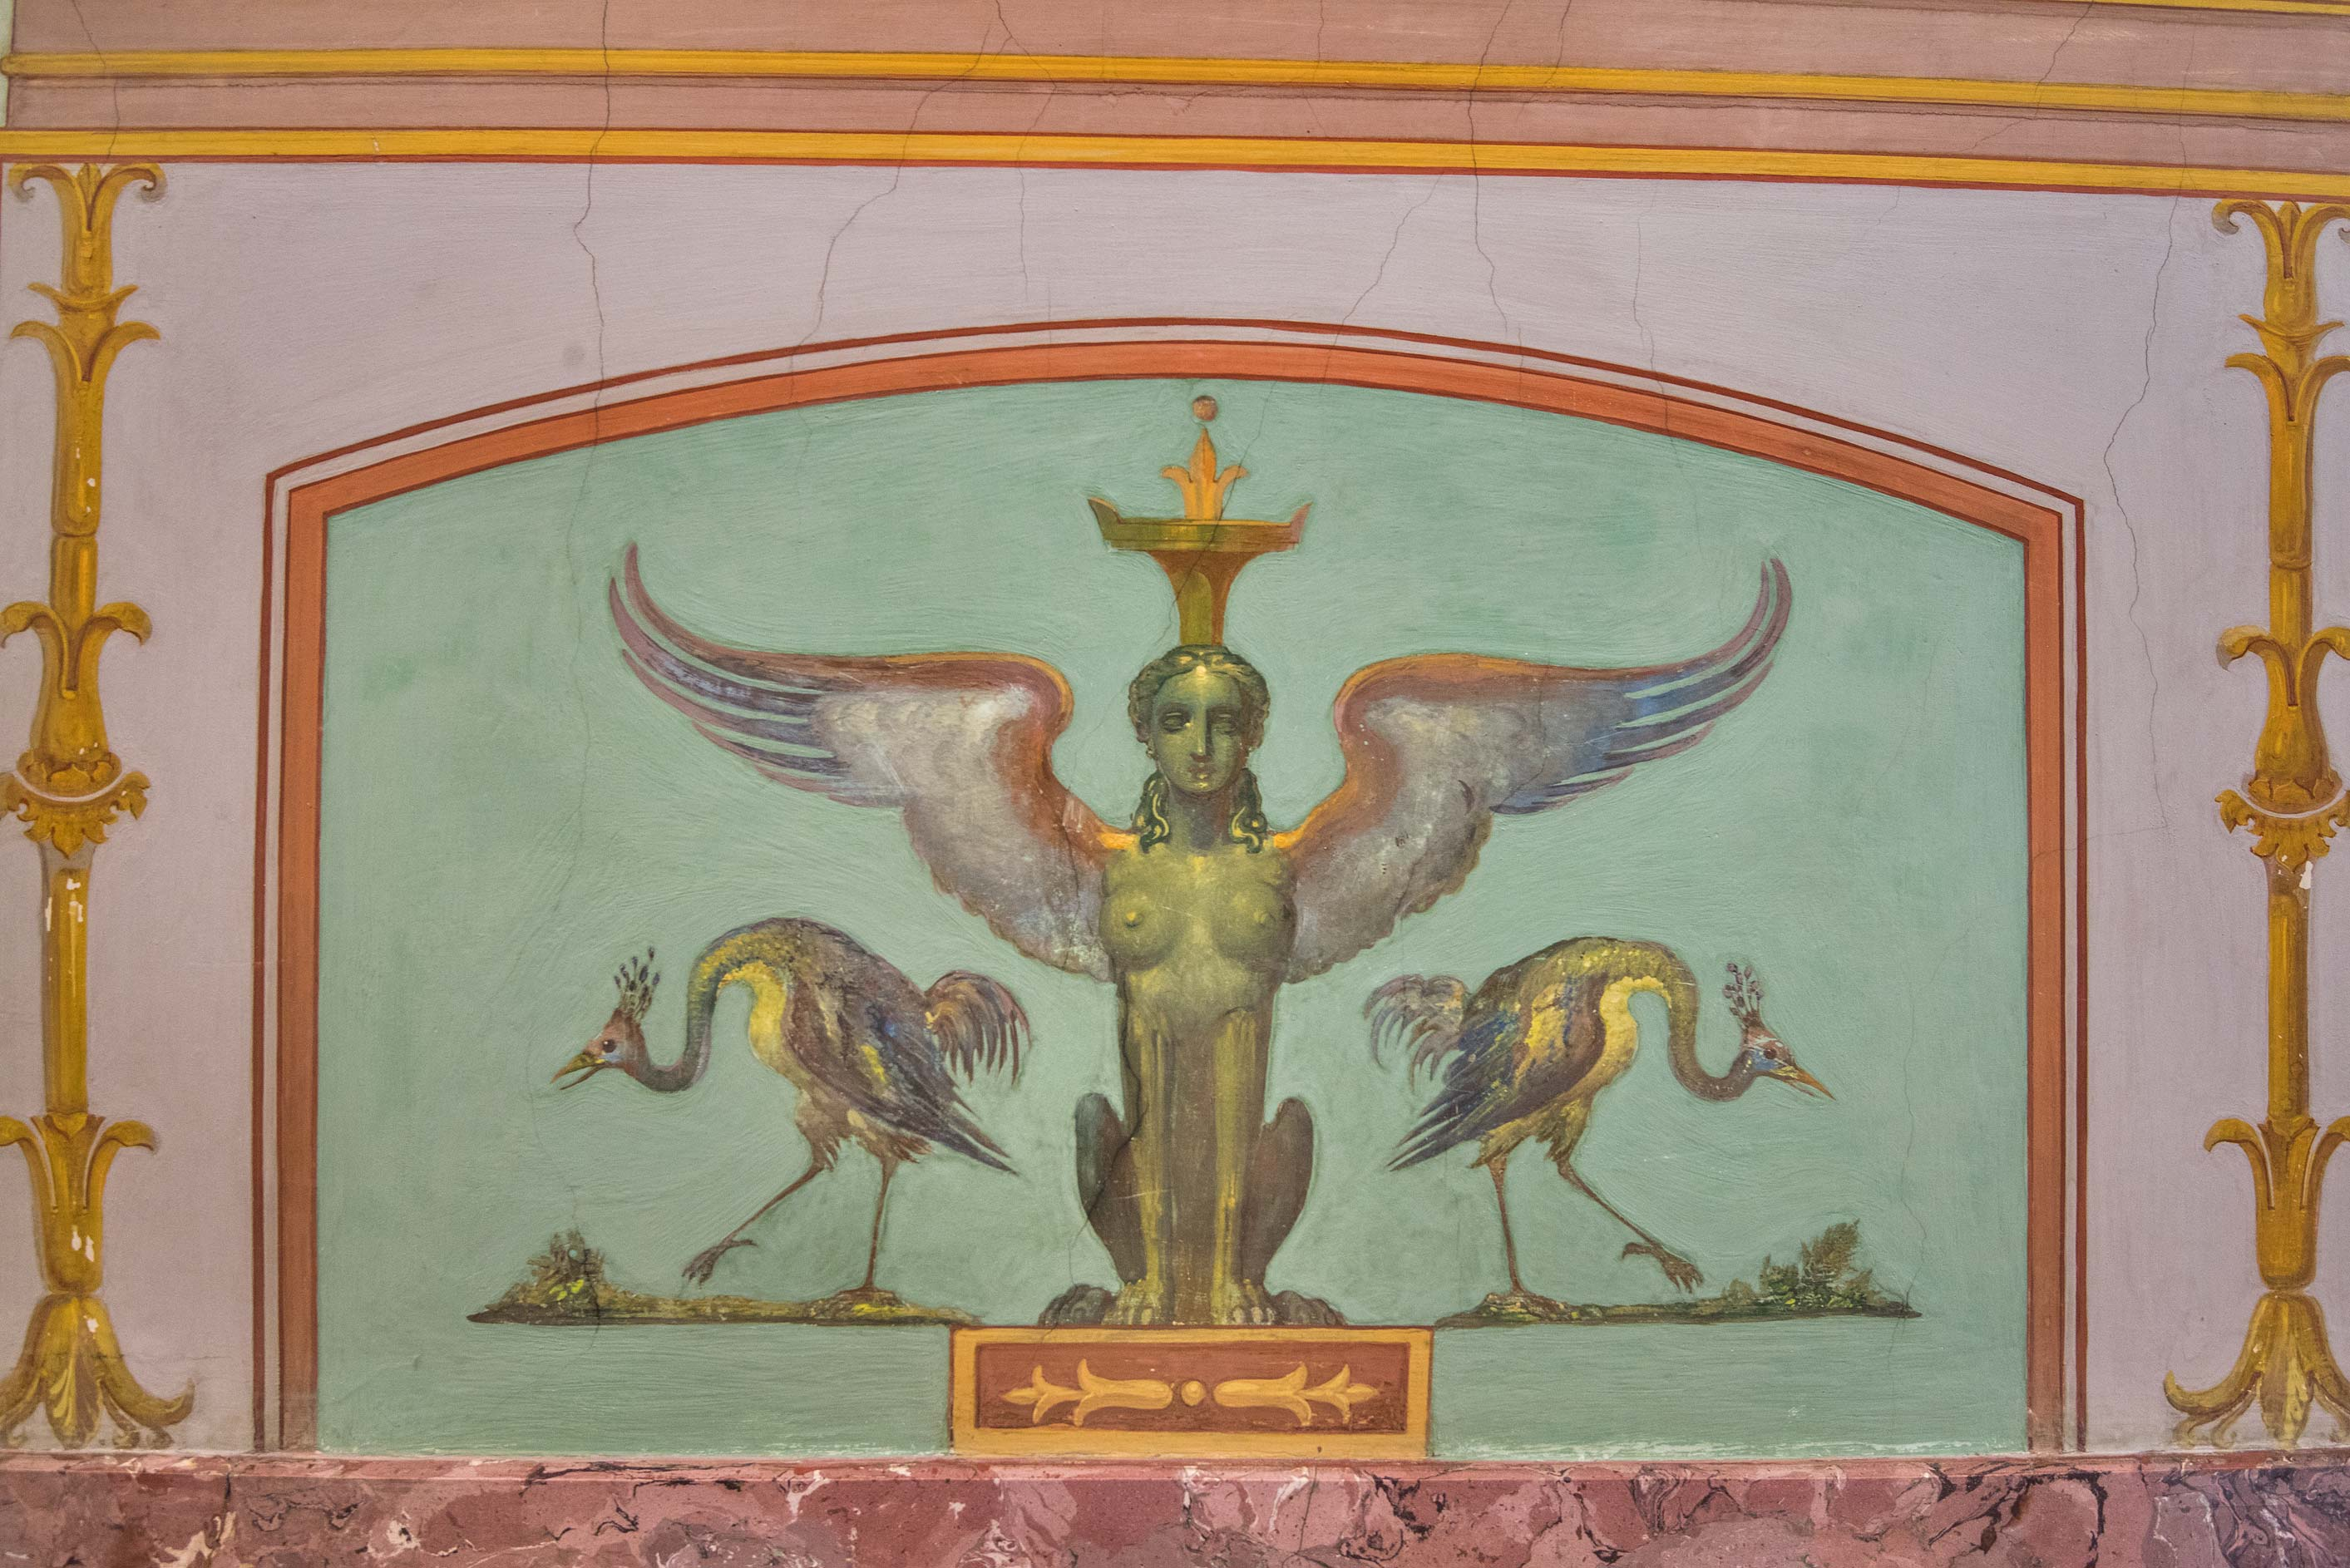 Wall decoration in Gallery of Ancient Painting in Hermitage Museum. St.Petersburg, Russia